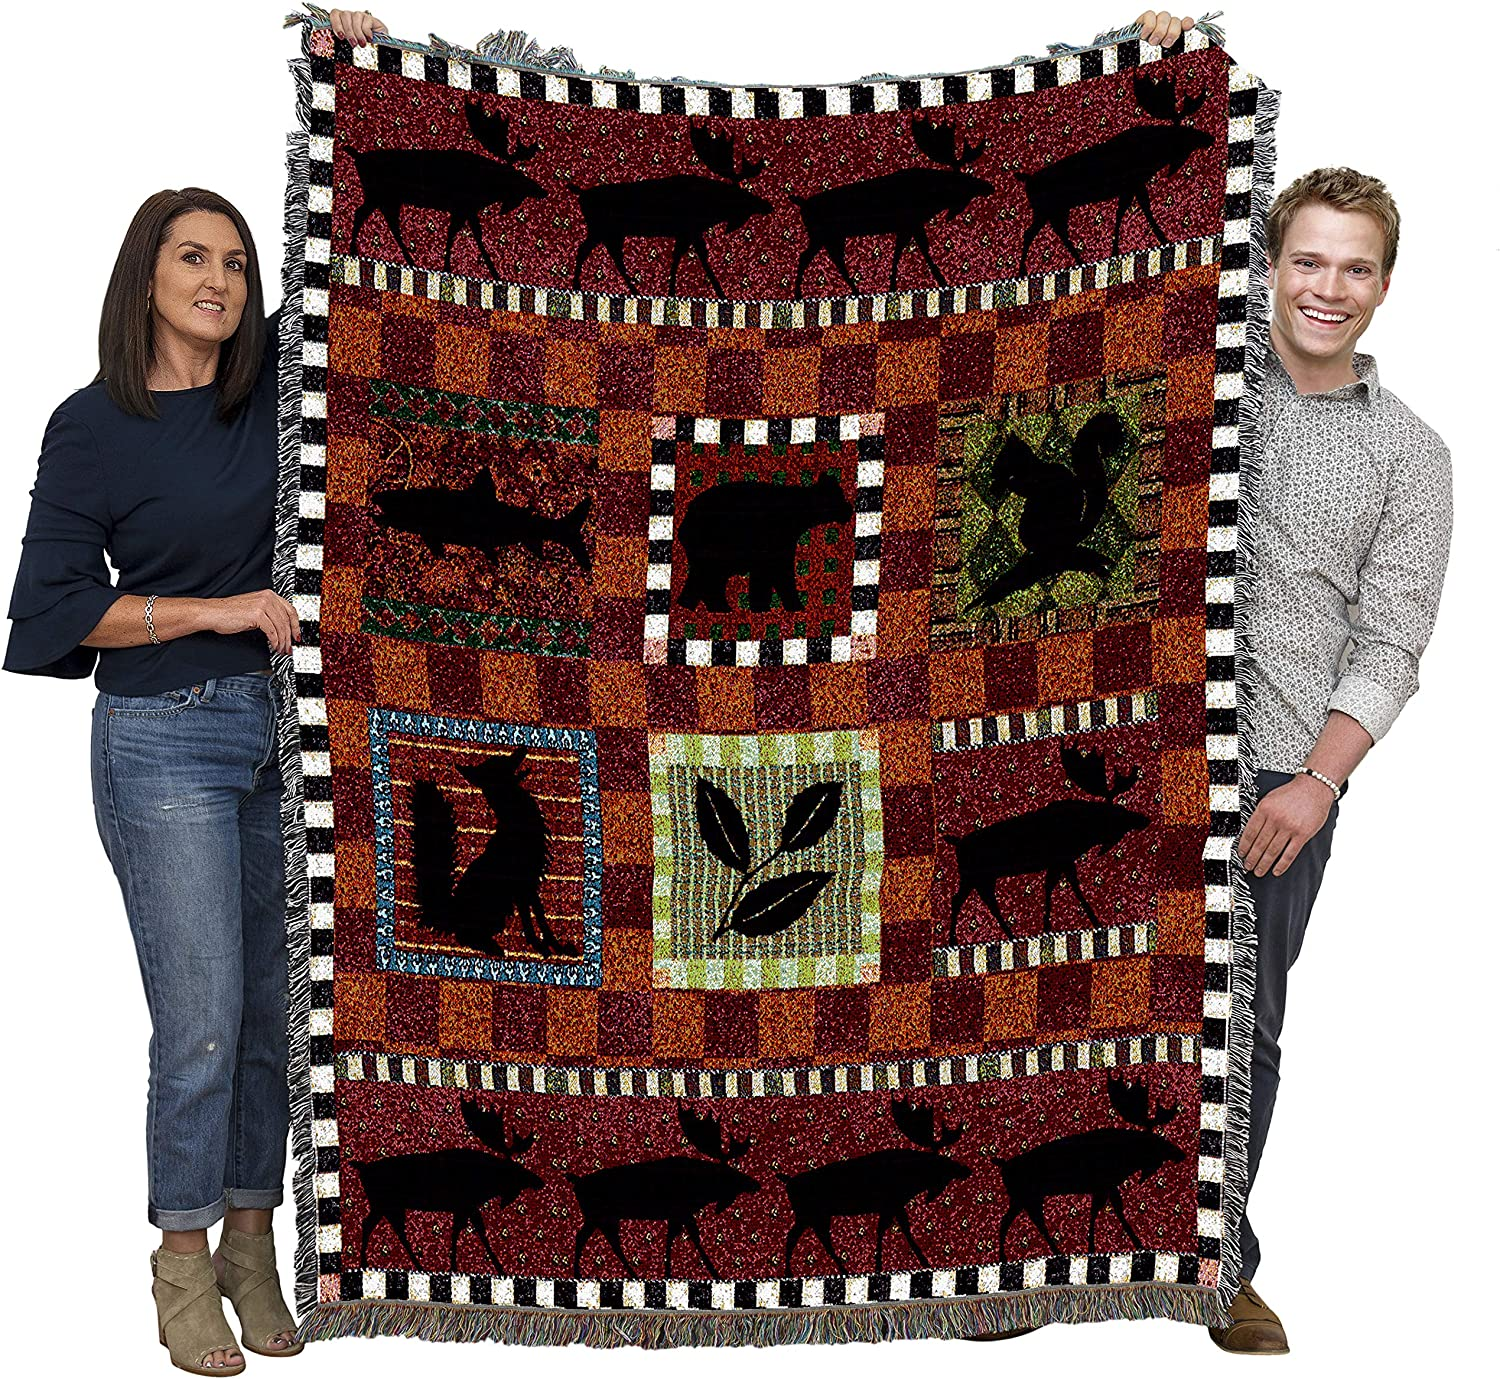 B001GDU8A2 Pure Country Weavers Lodge Cabin Hunting Woven Blanket Large Soft Comforting Lodge Décor Throw 100% Cotton Made in The USA 72x54 A1Dy7l3XGCL